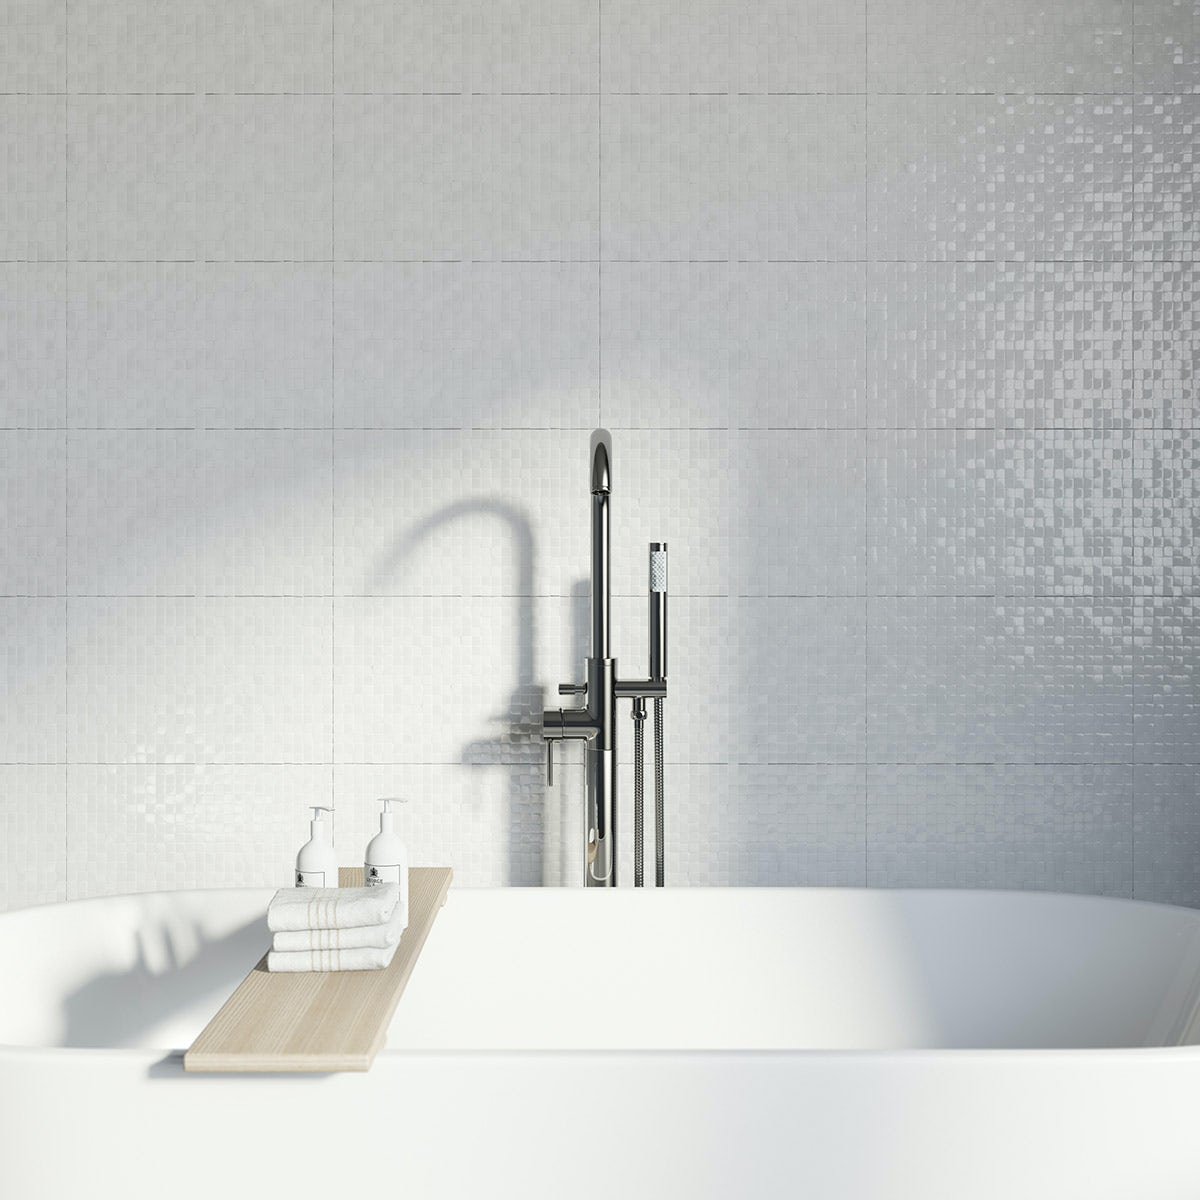 Studio Conran hartland white pressed mosaic tile 248mm x 398mm. Studio Conran Hartland White Pressed Mosaic Tile 248mm x 398mm